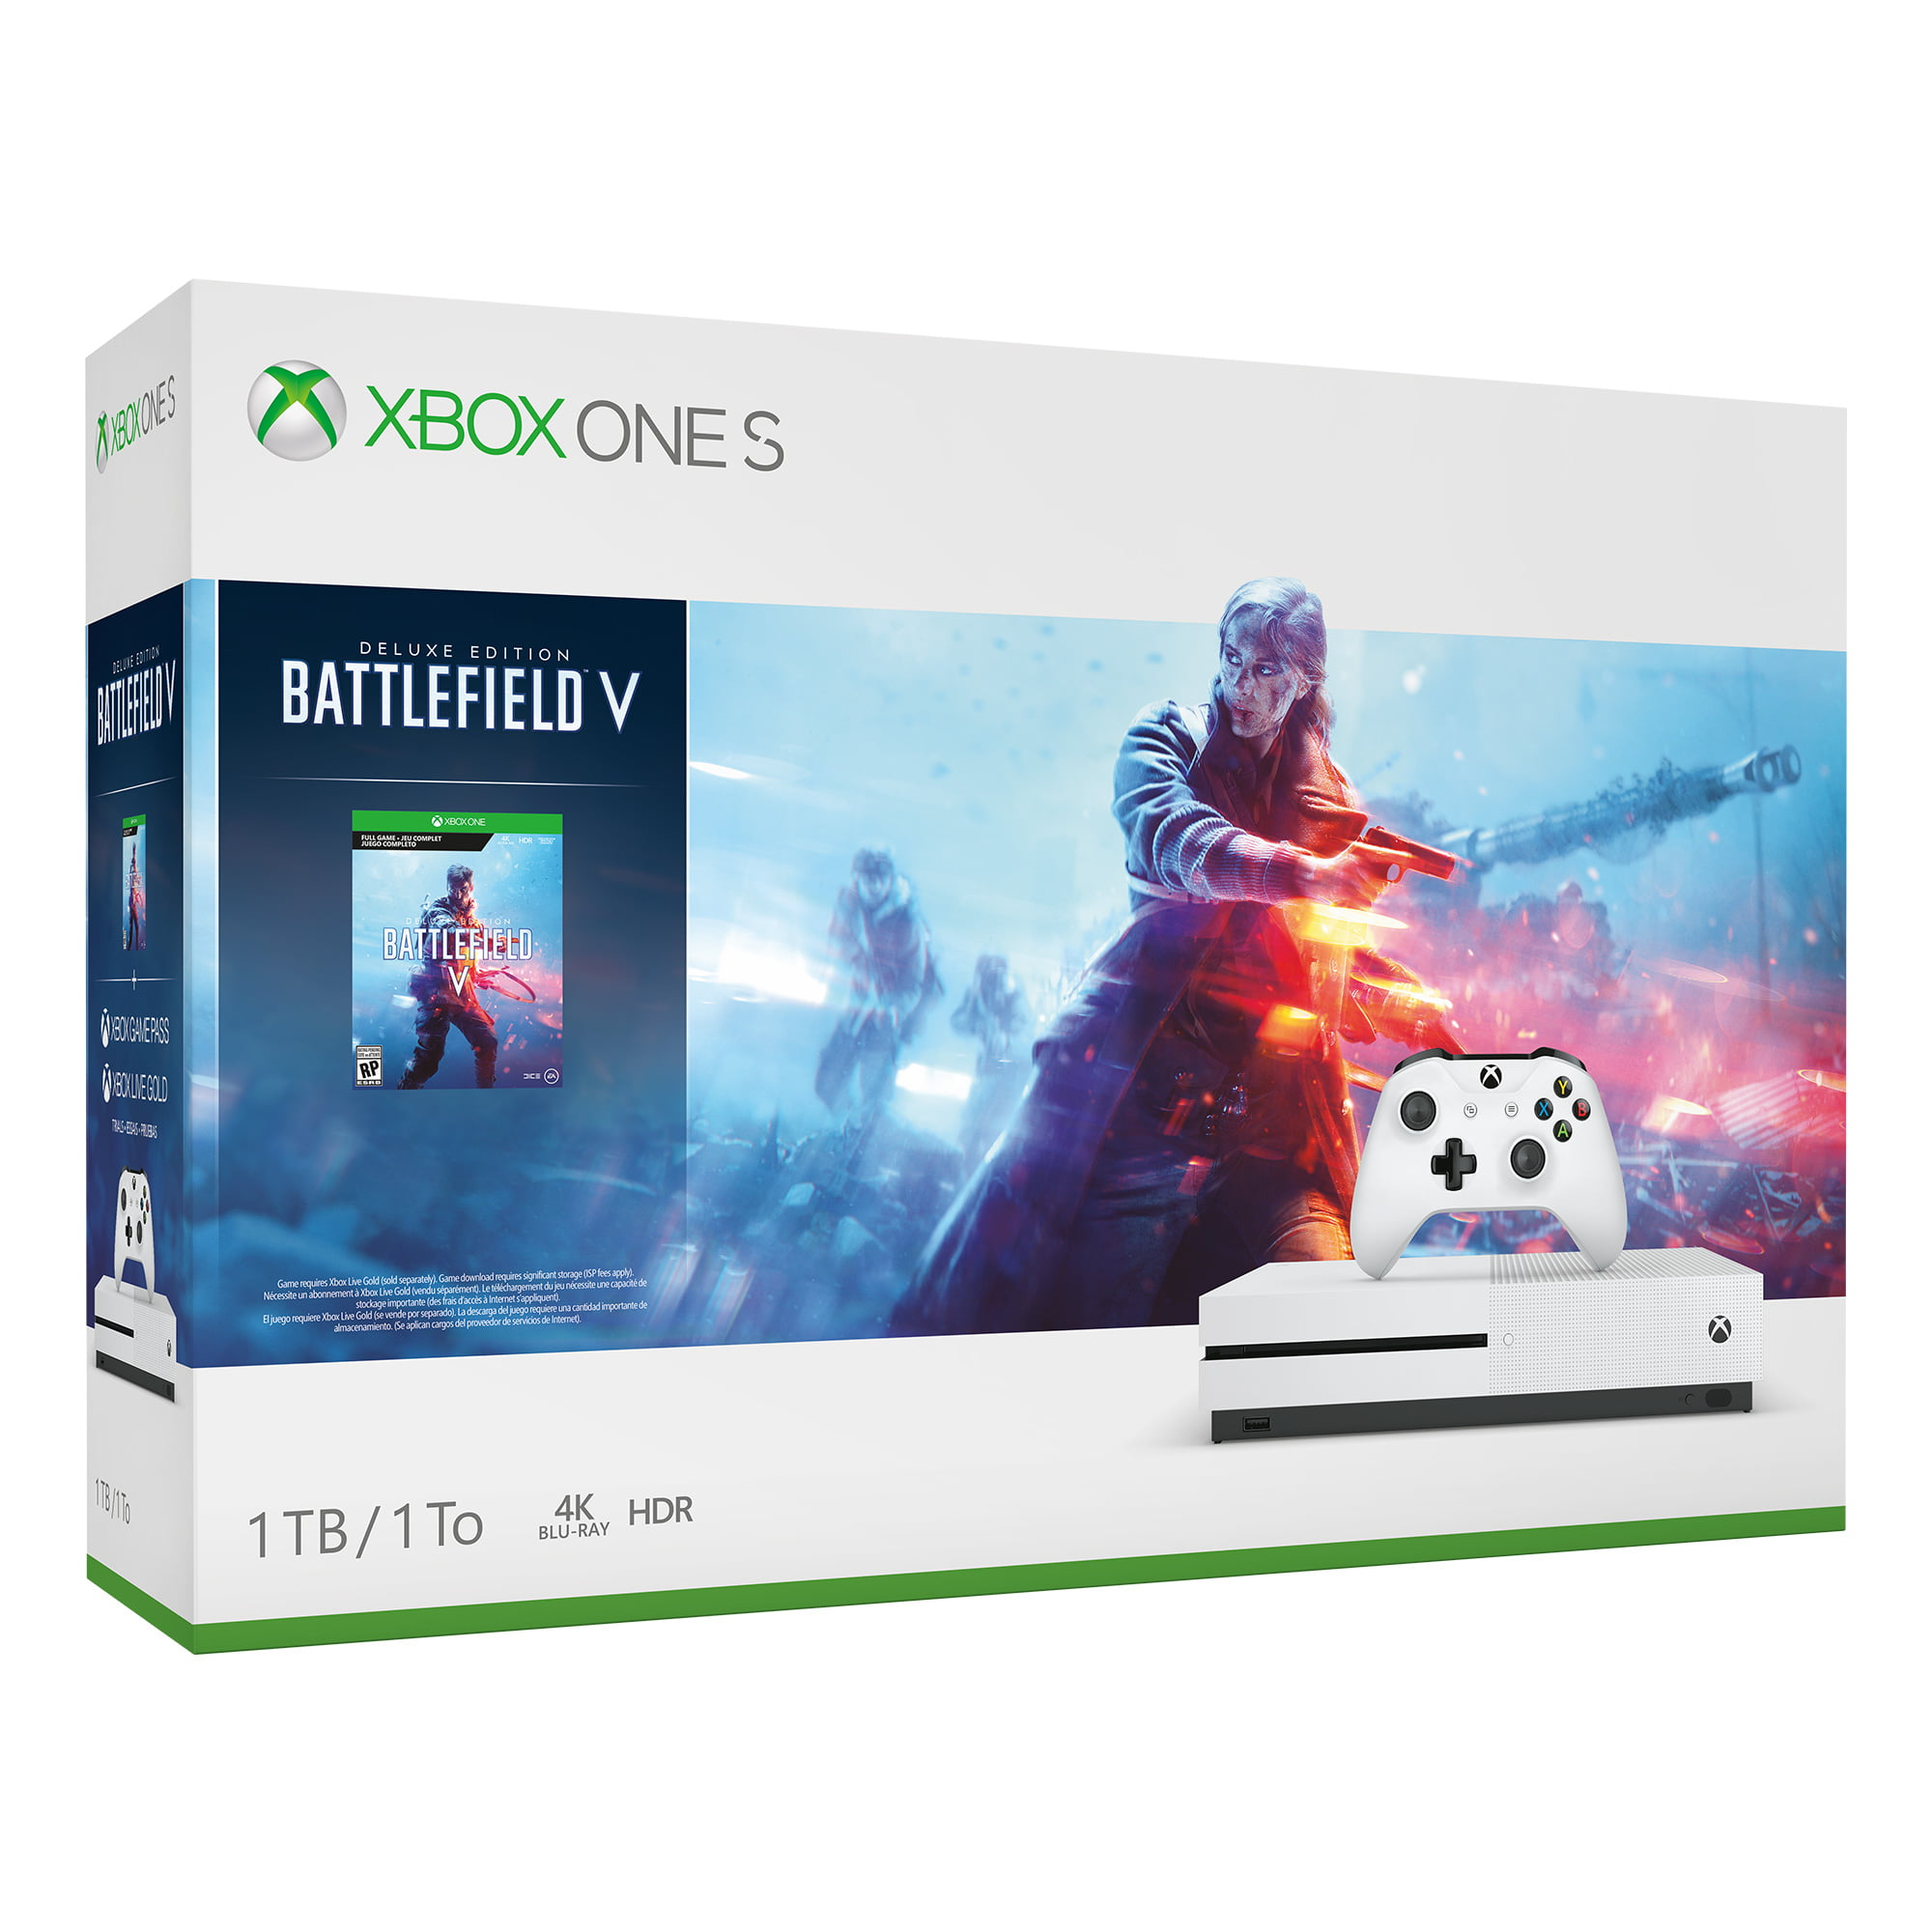 Microsoft Xbox One S 1TB Battlefield V Bundle, White, 234